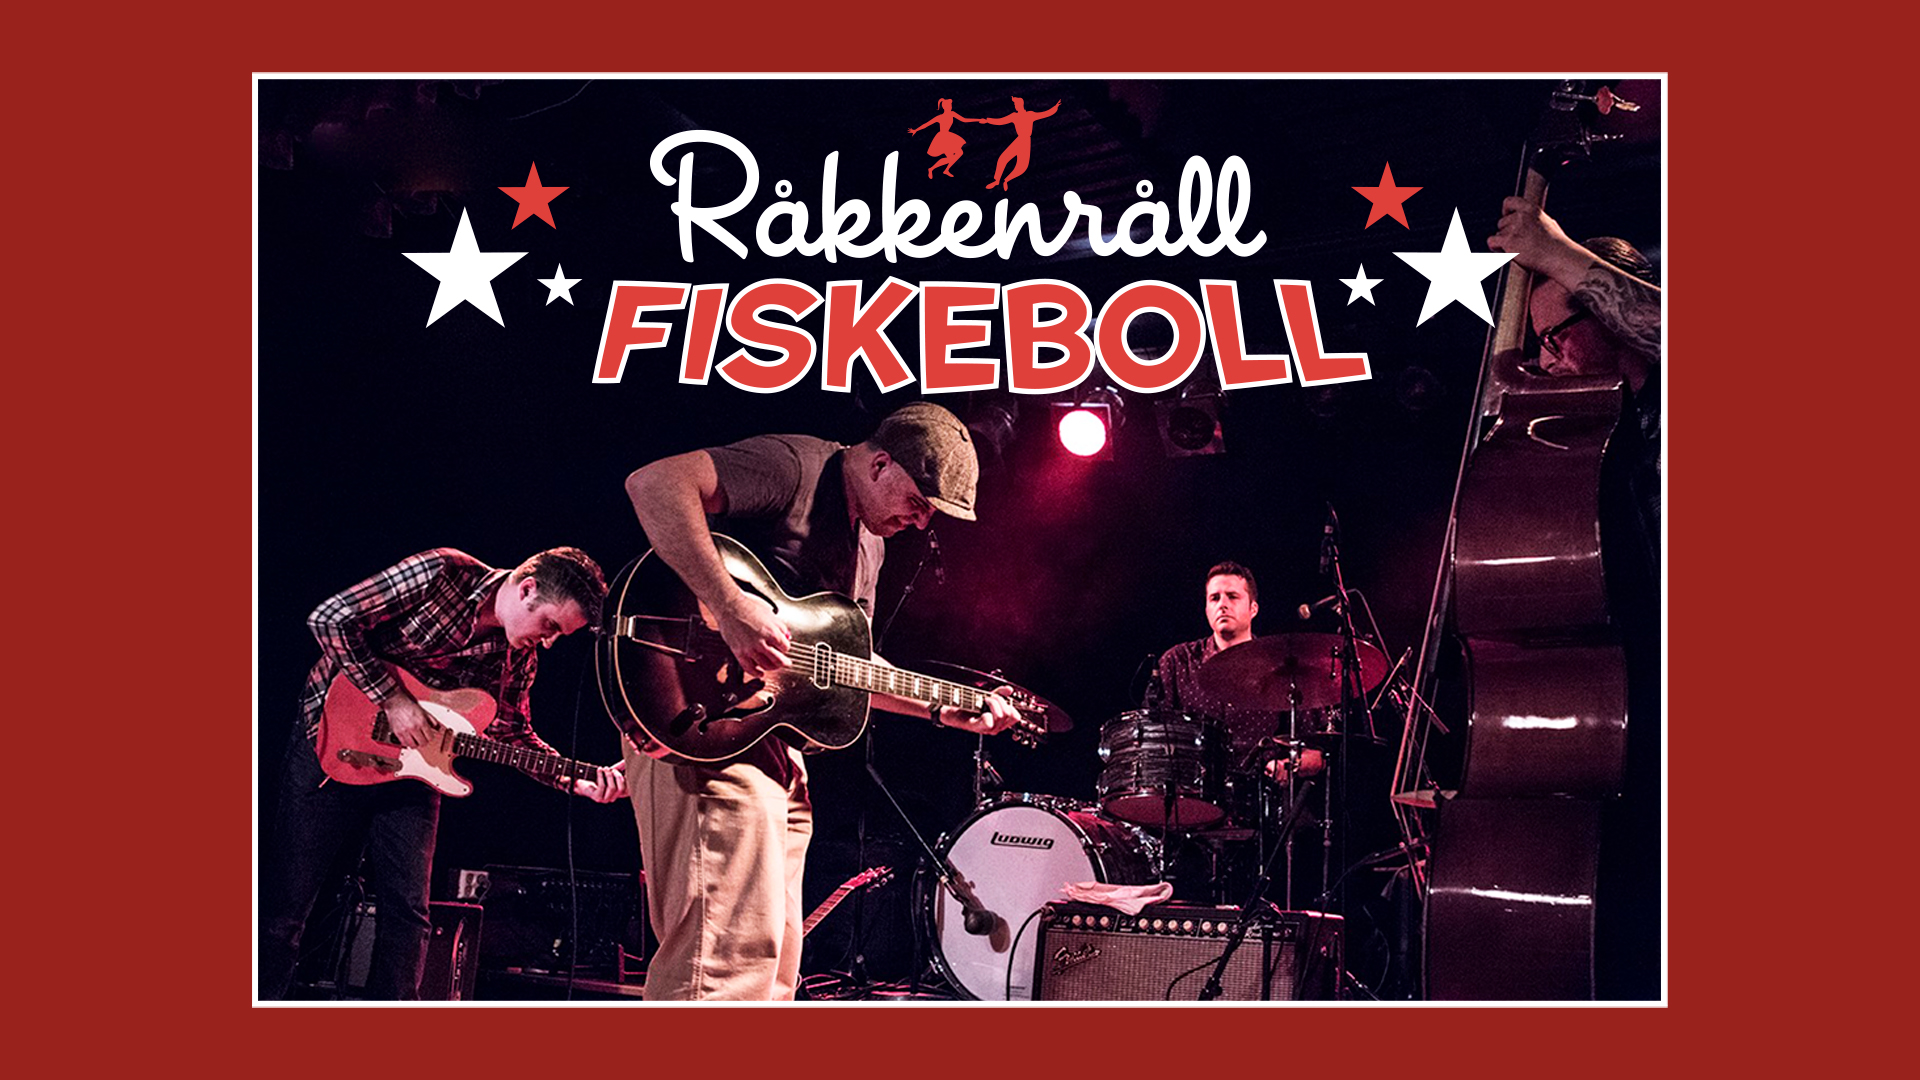 RÅKKENRÅLL FISKEBOLL RETRO-KLUBB & AFTEN-PARTY #2